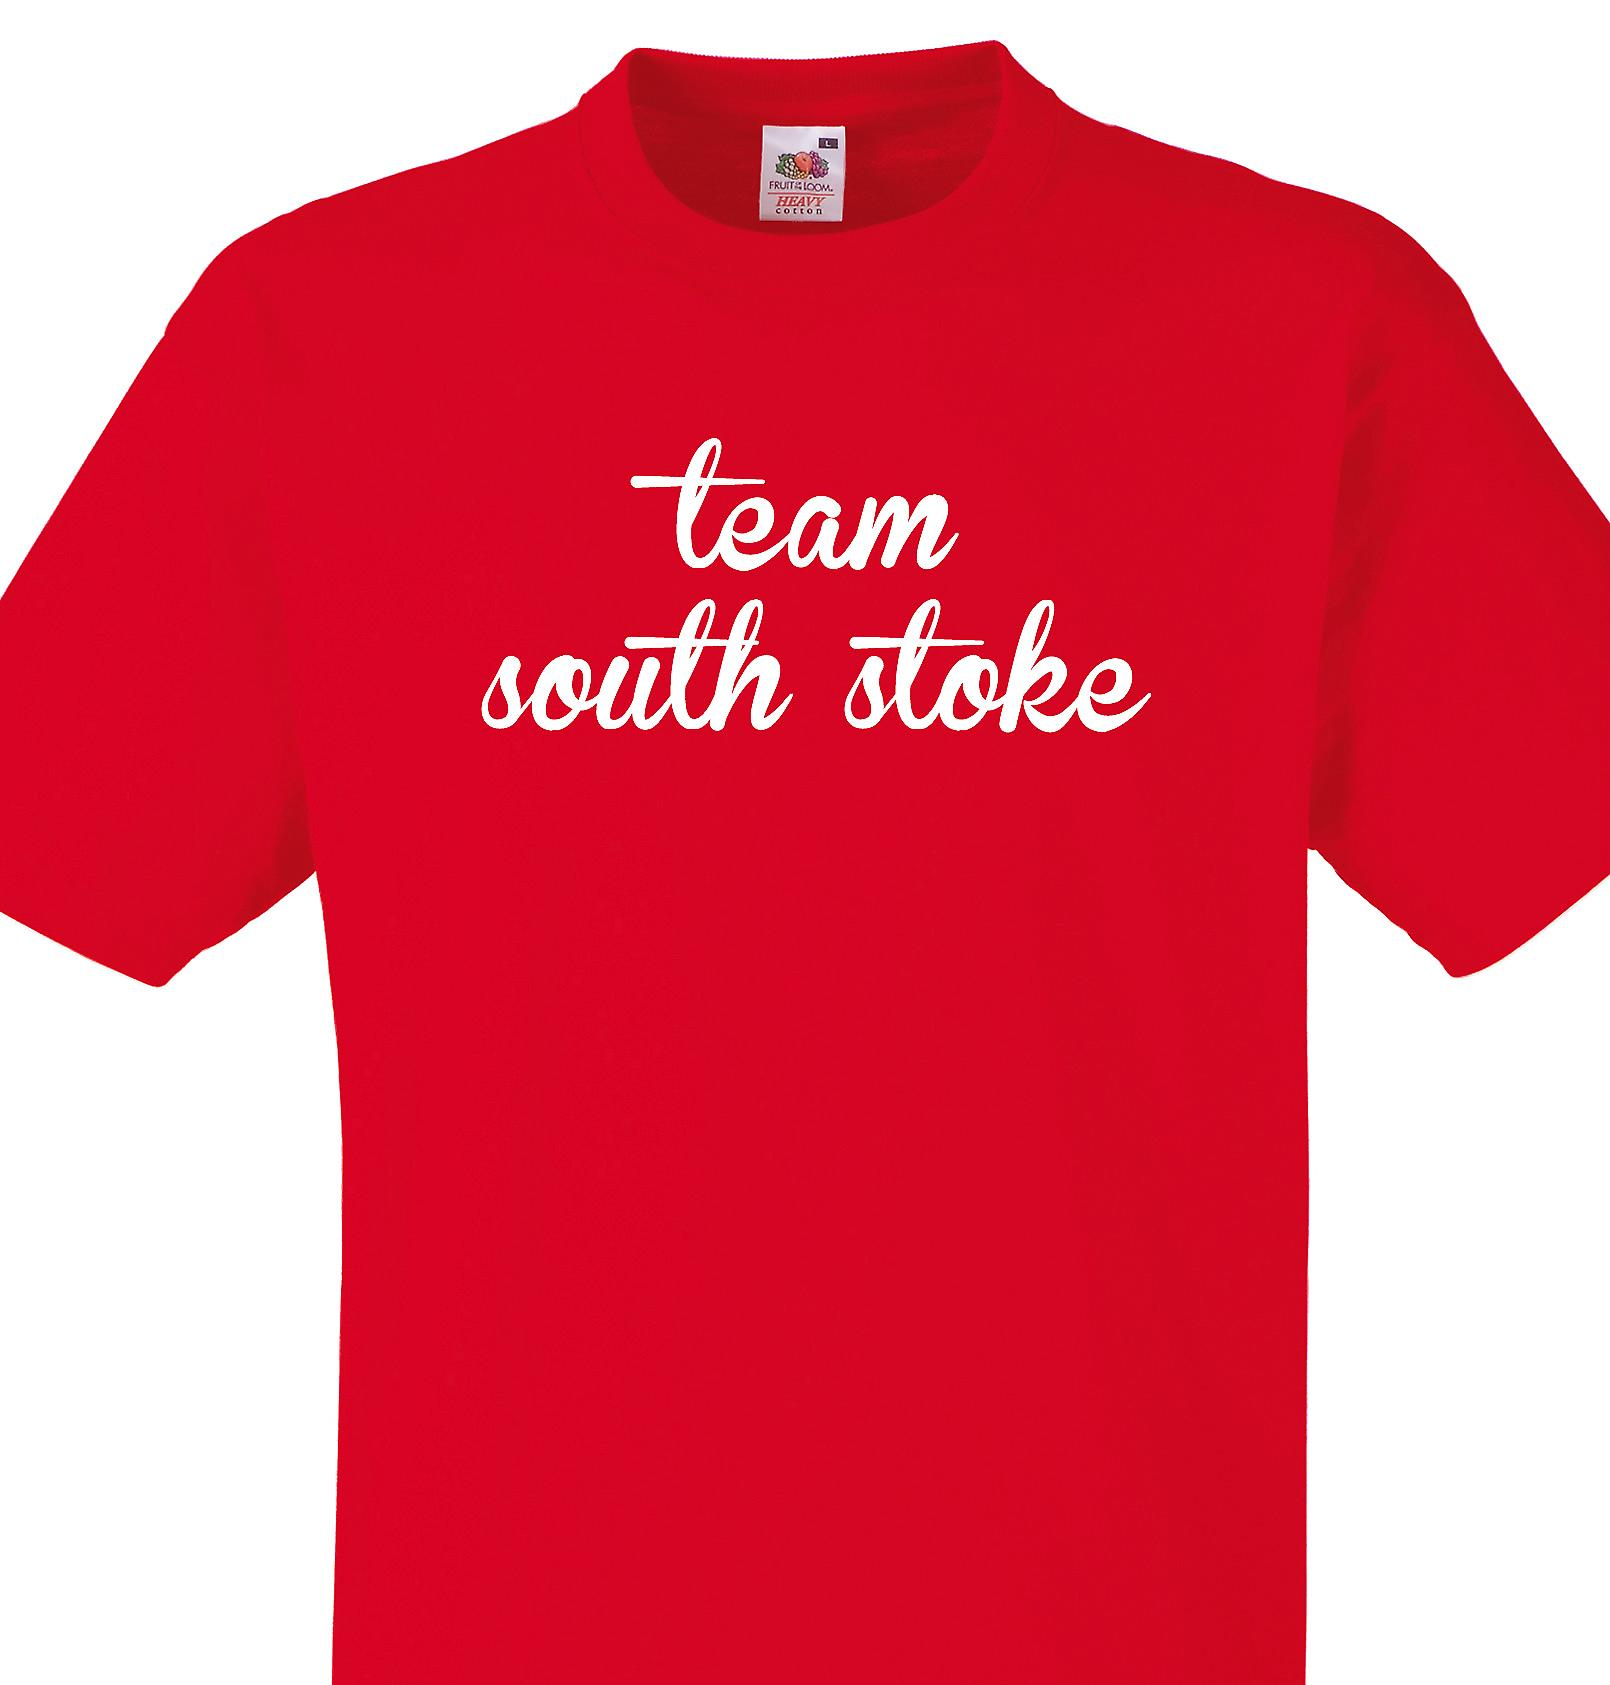 Team South stoke Red T shirt